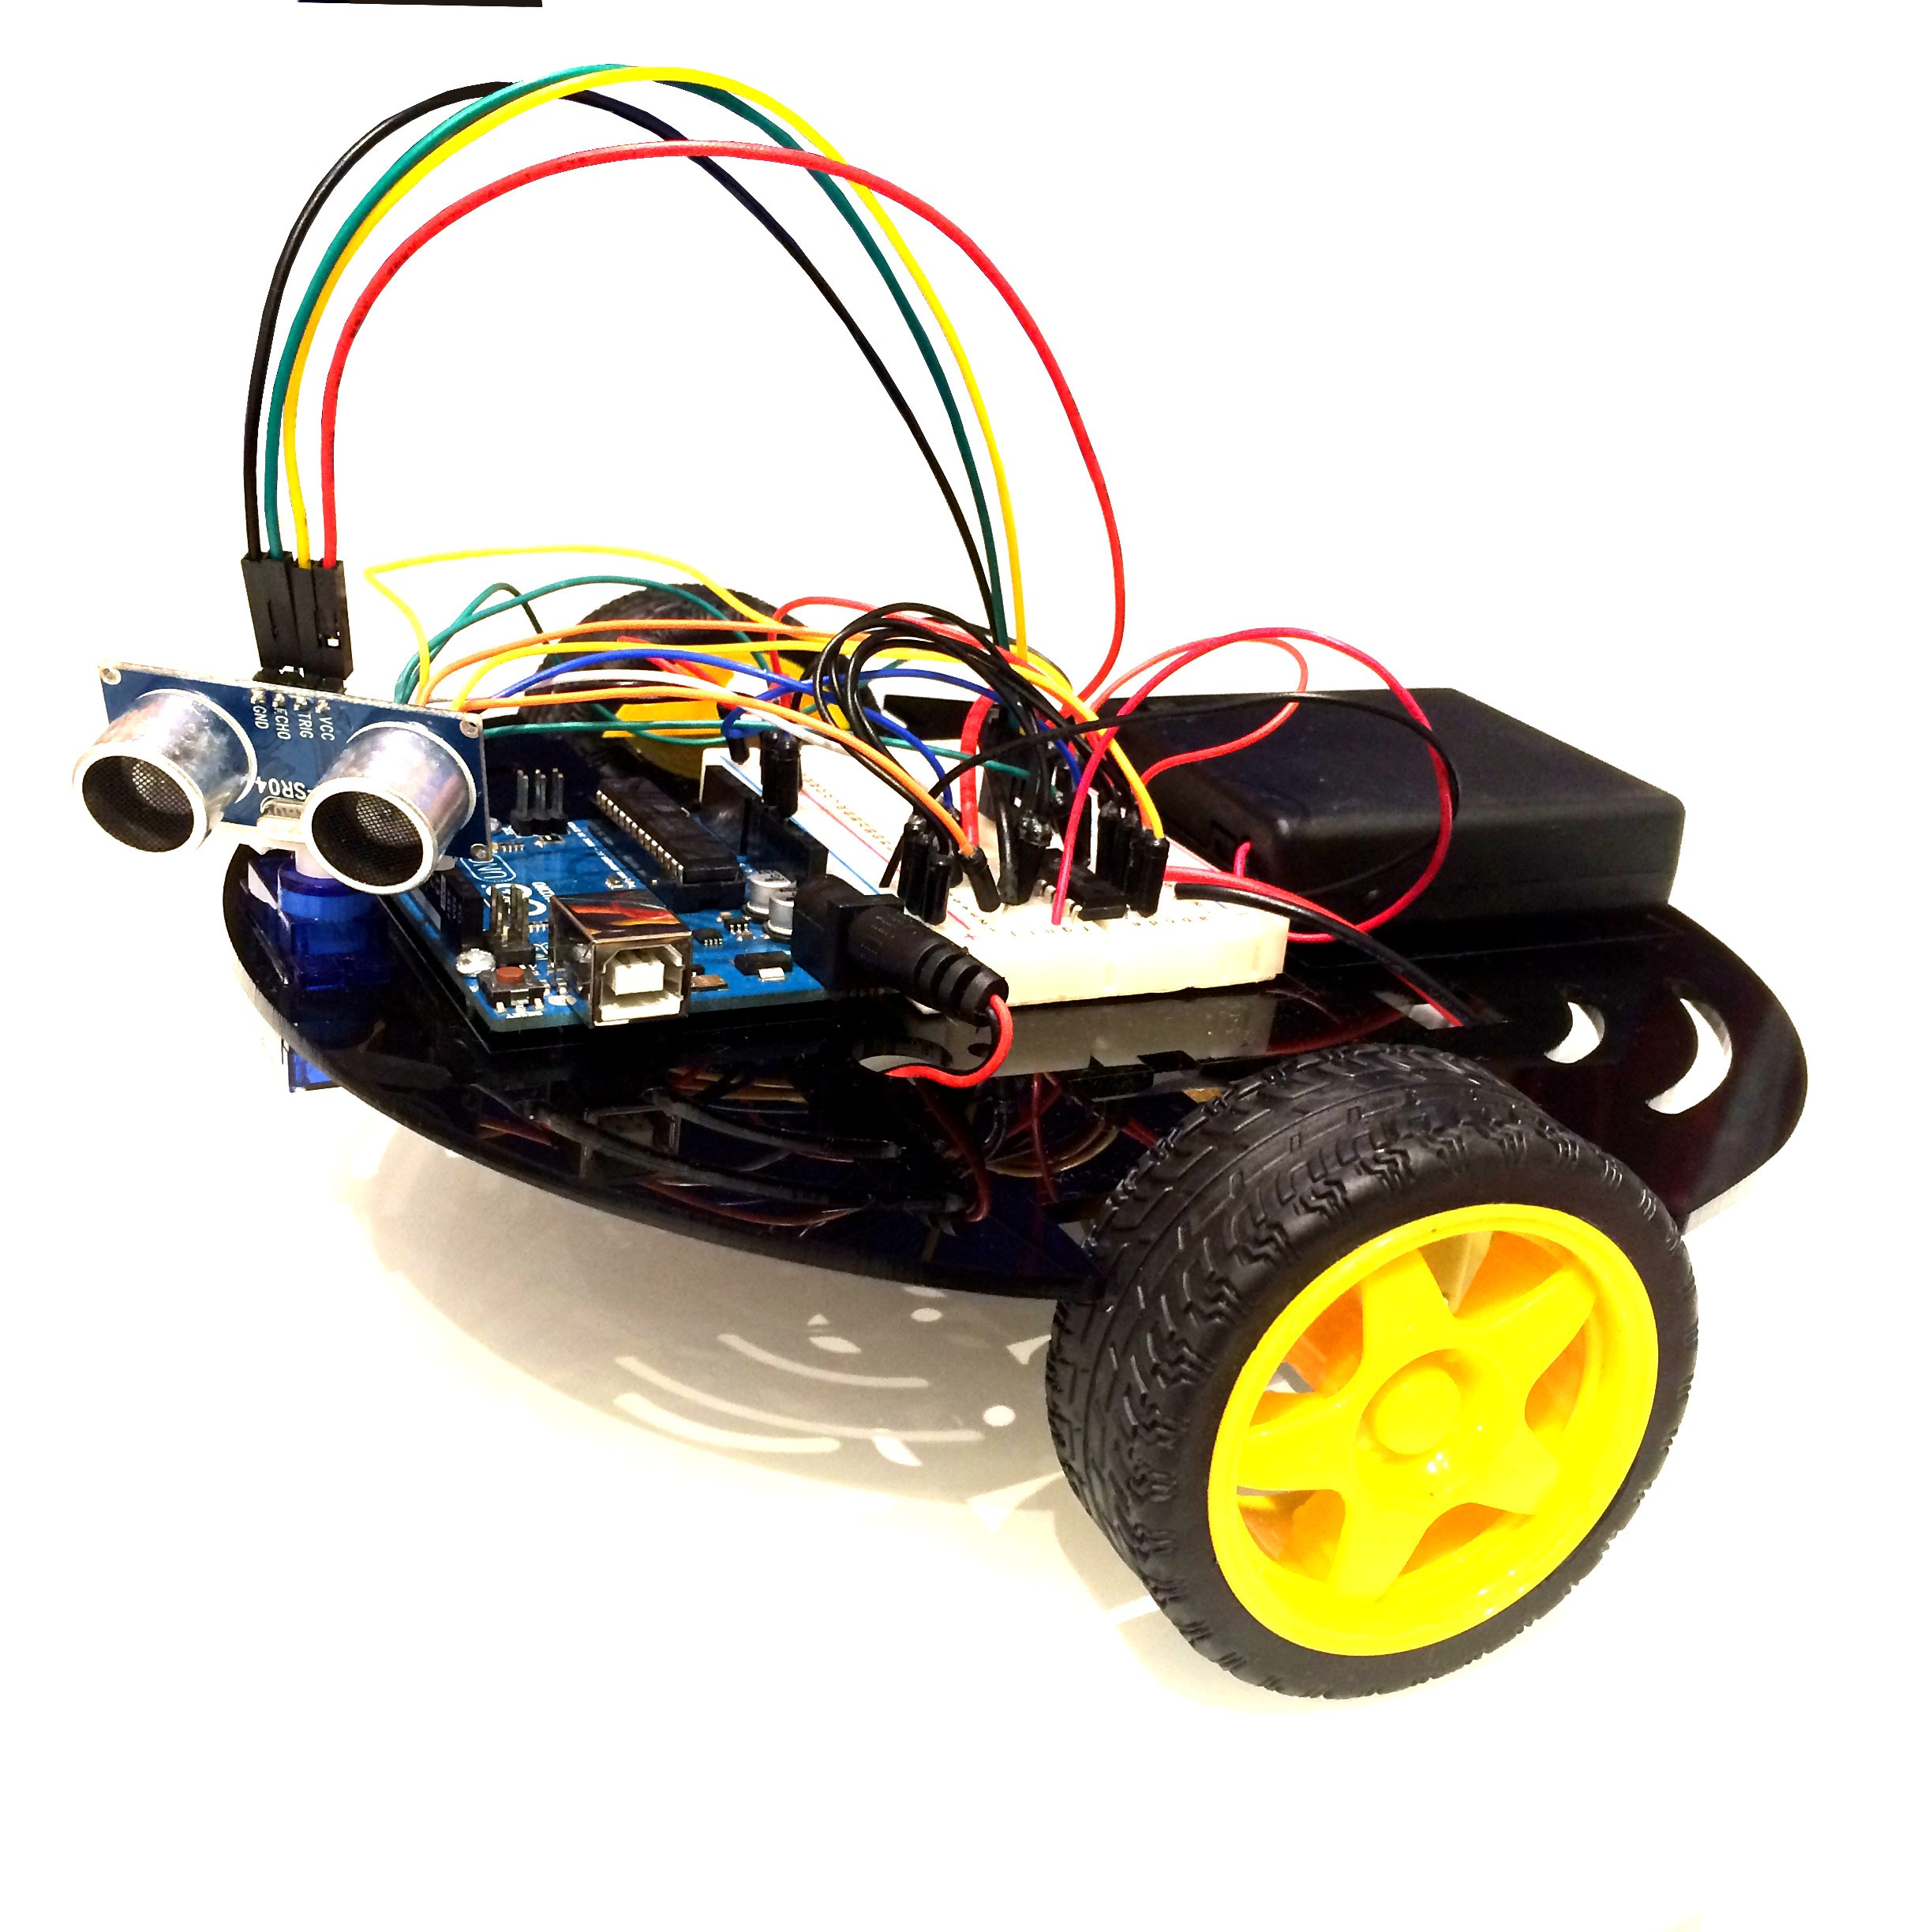 Arduino uno robot kit complete with electronics